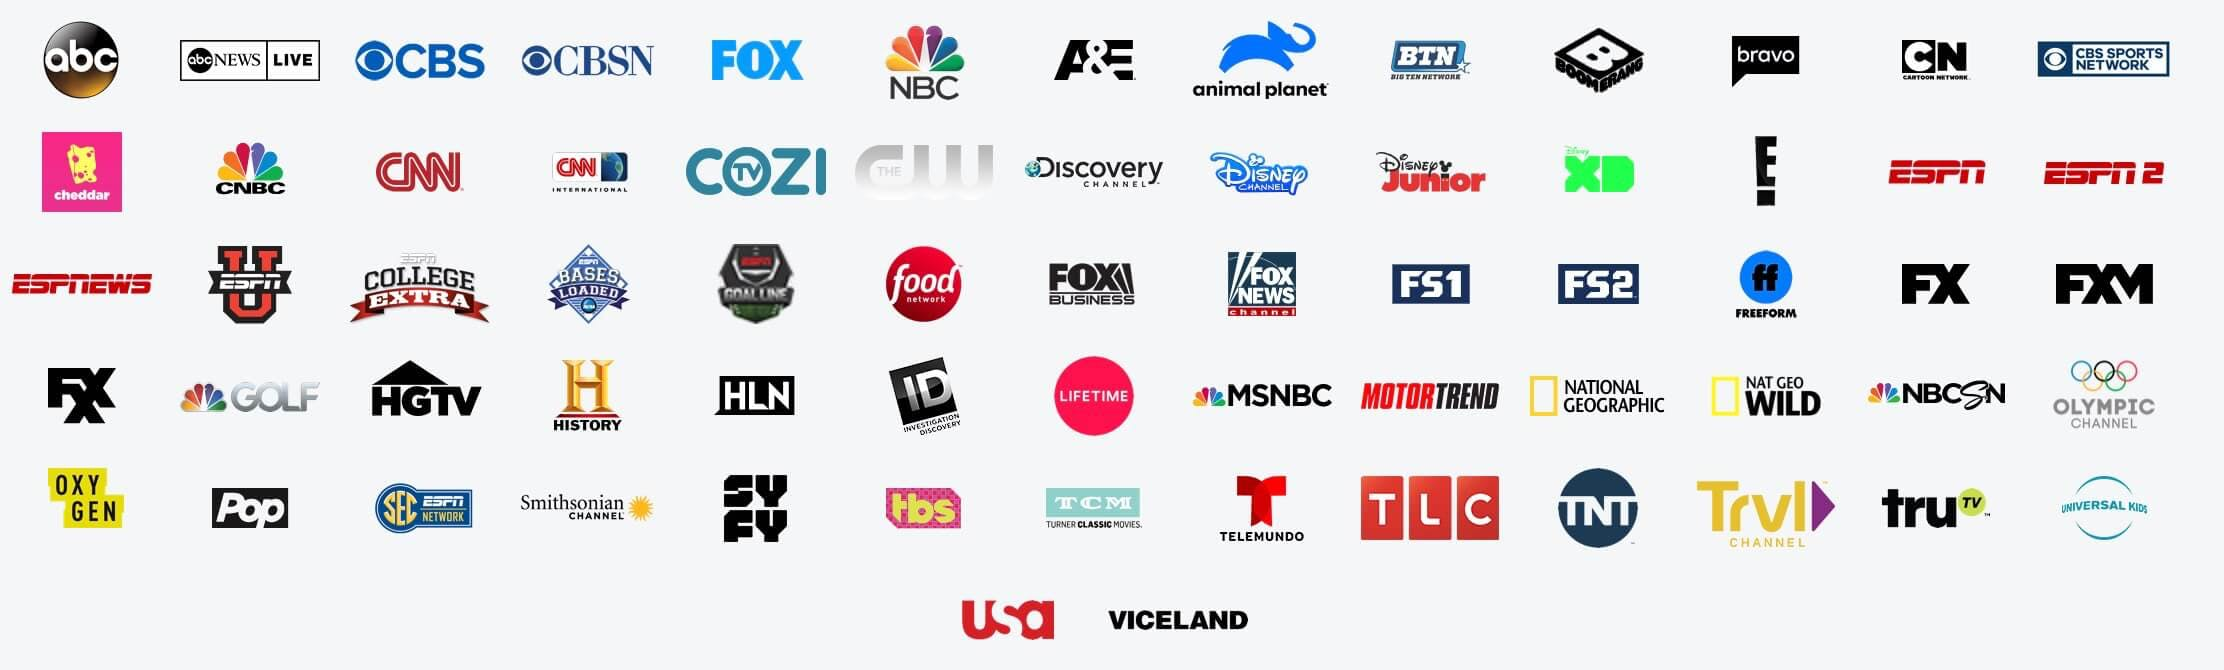 Hulu with Live TV channel